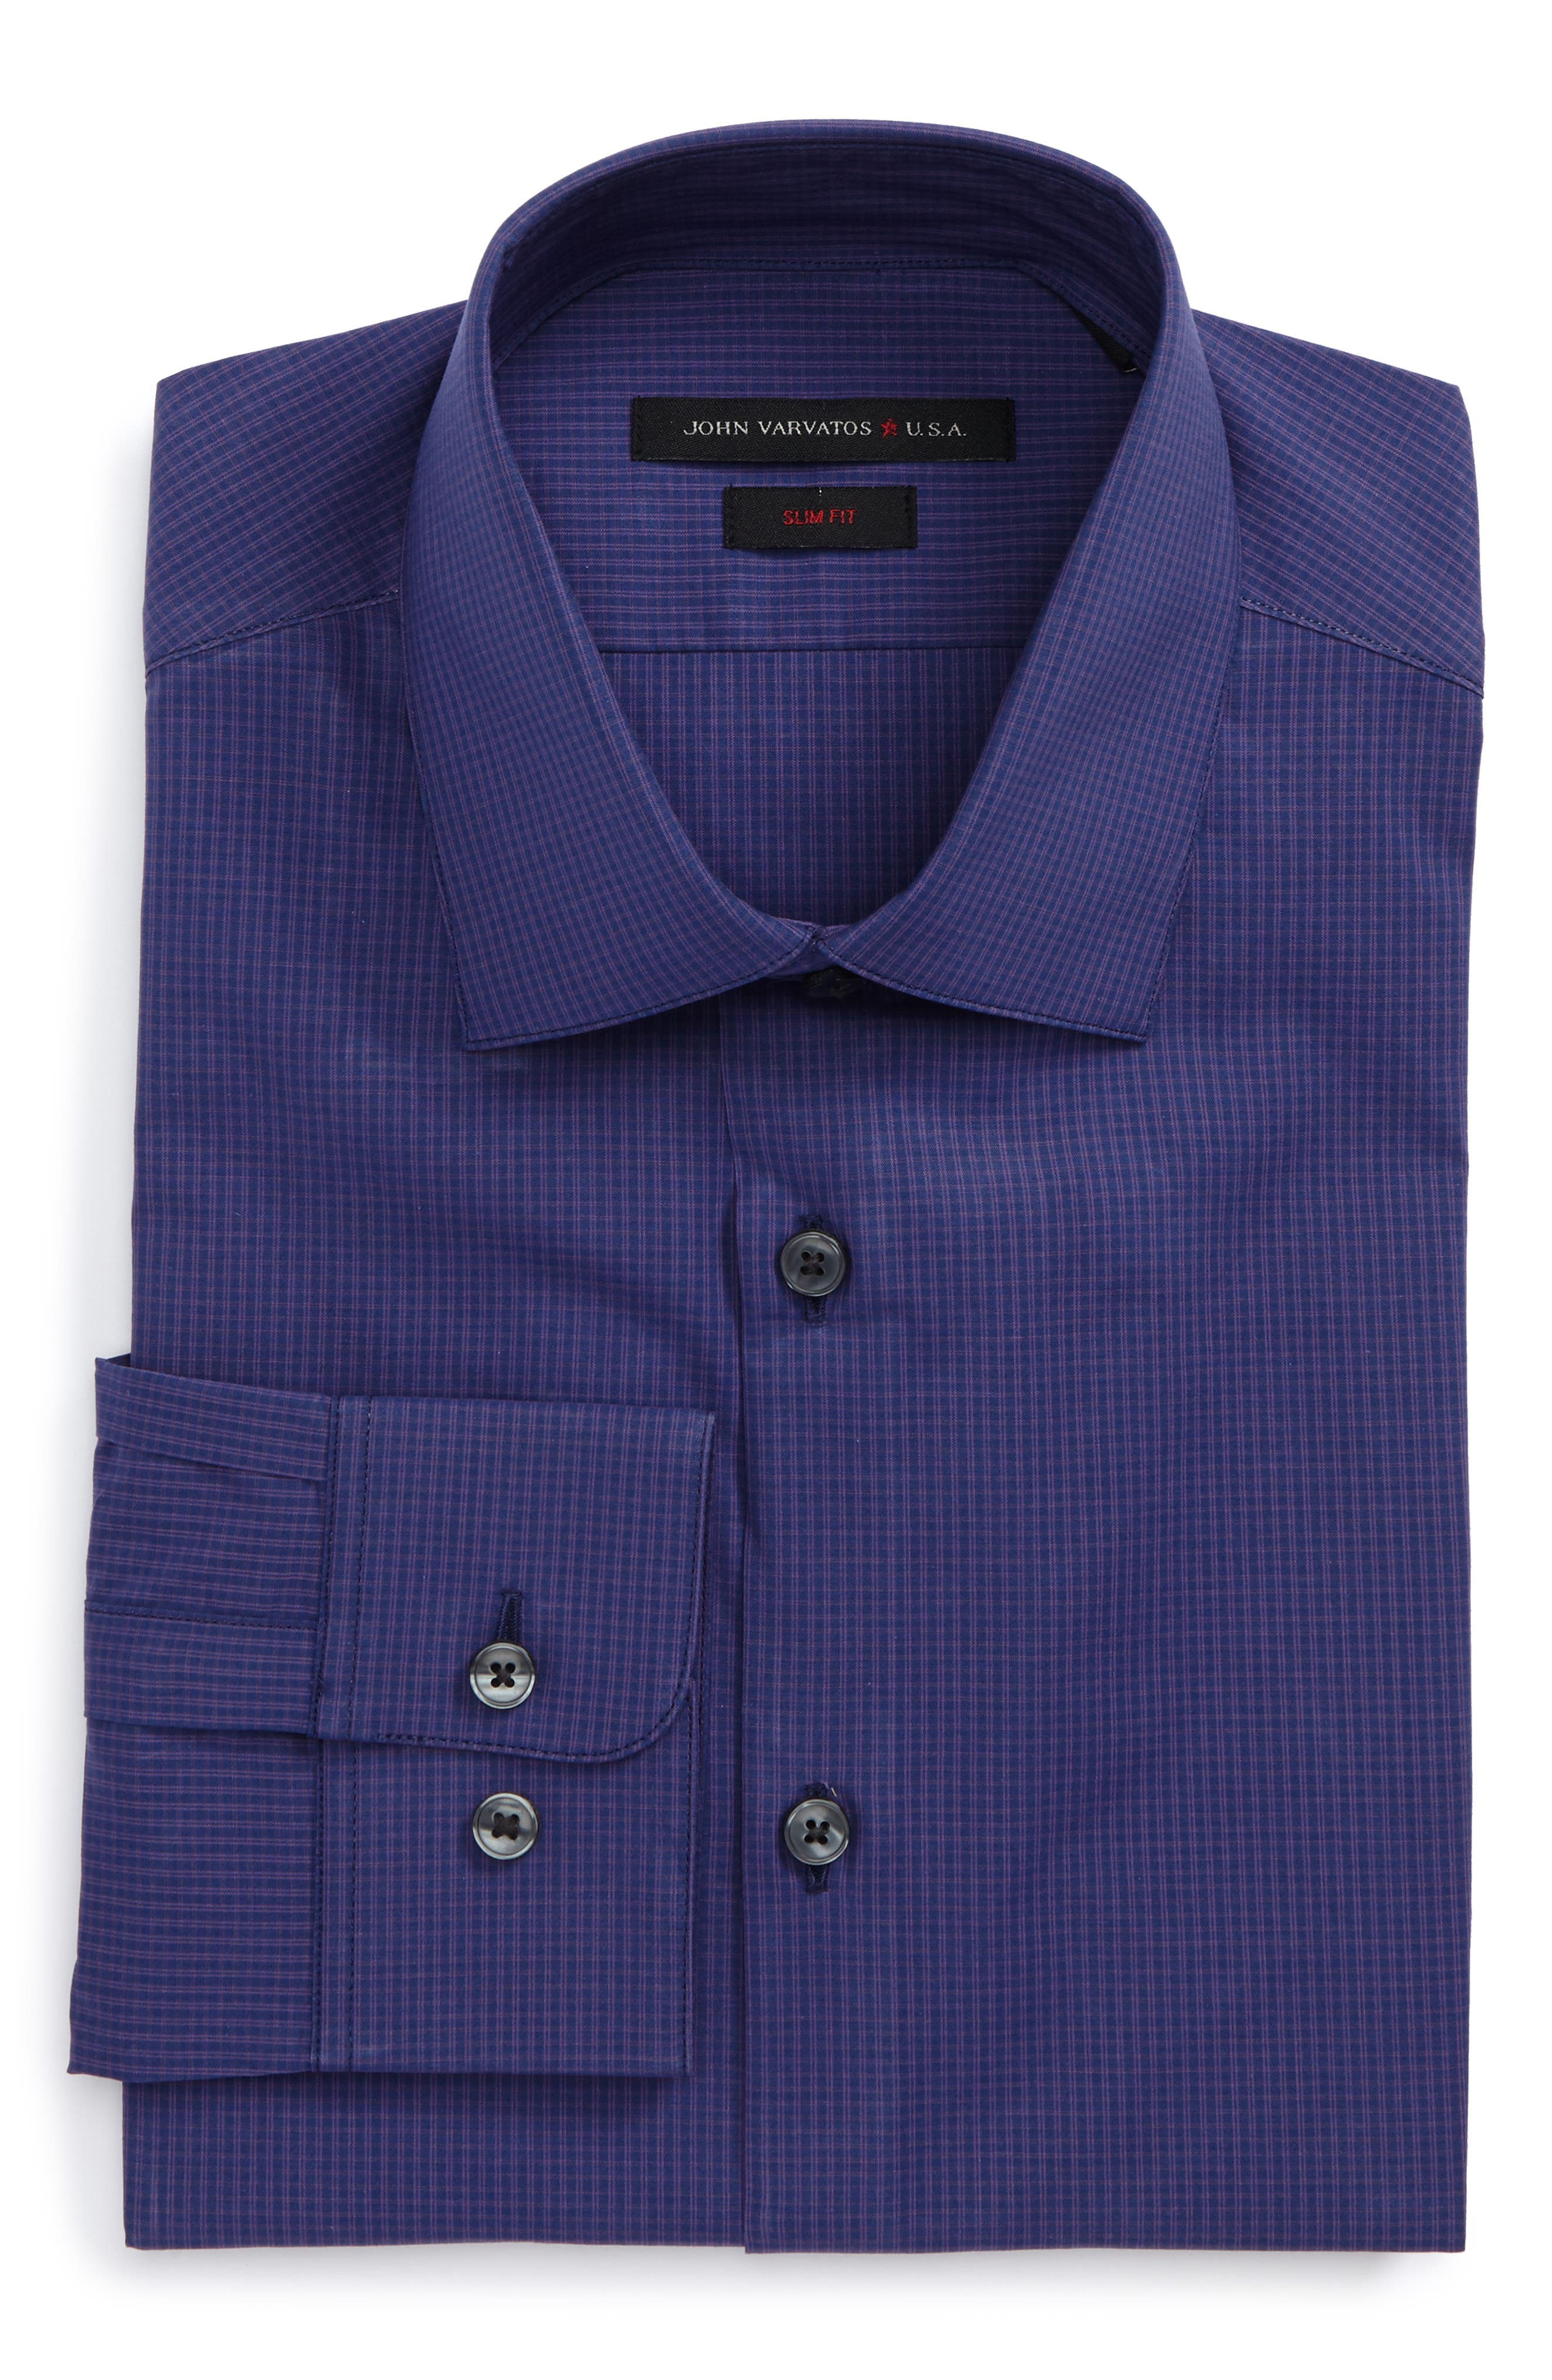 Alternate Image 1 Selected - John Varvatos Star USA Slim Fit Stretch Check Dress Shirt